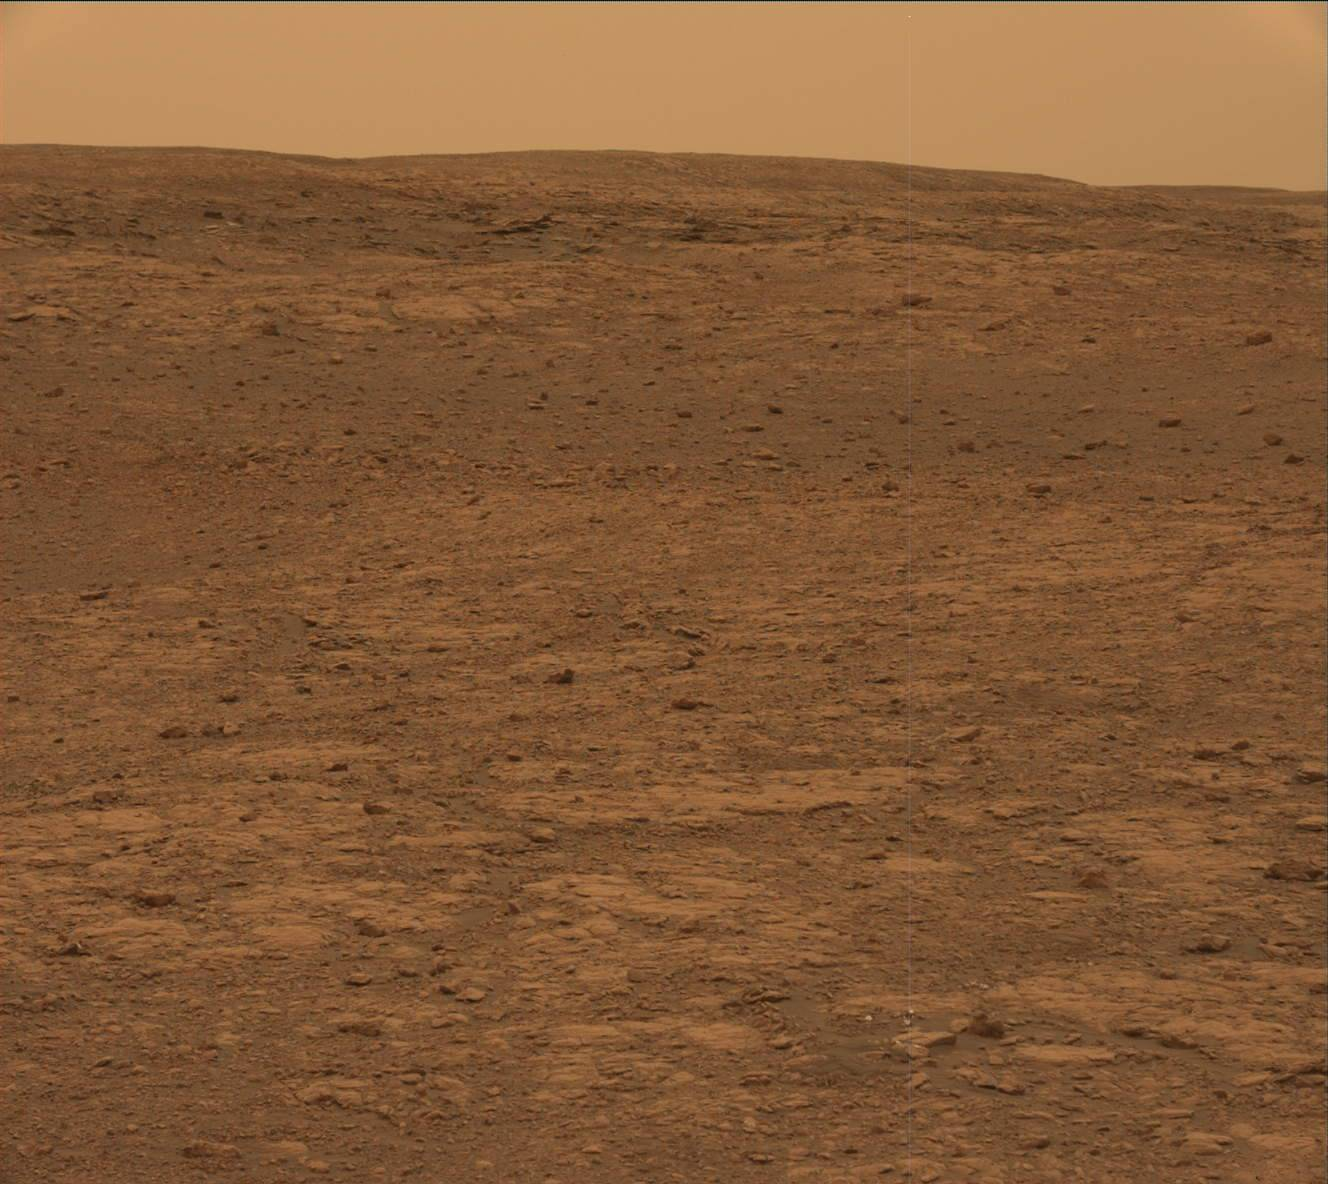 Nasa's Mars rover Curiosity acquired this image using its Mast Camera (Mastcam) on Sol 2115